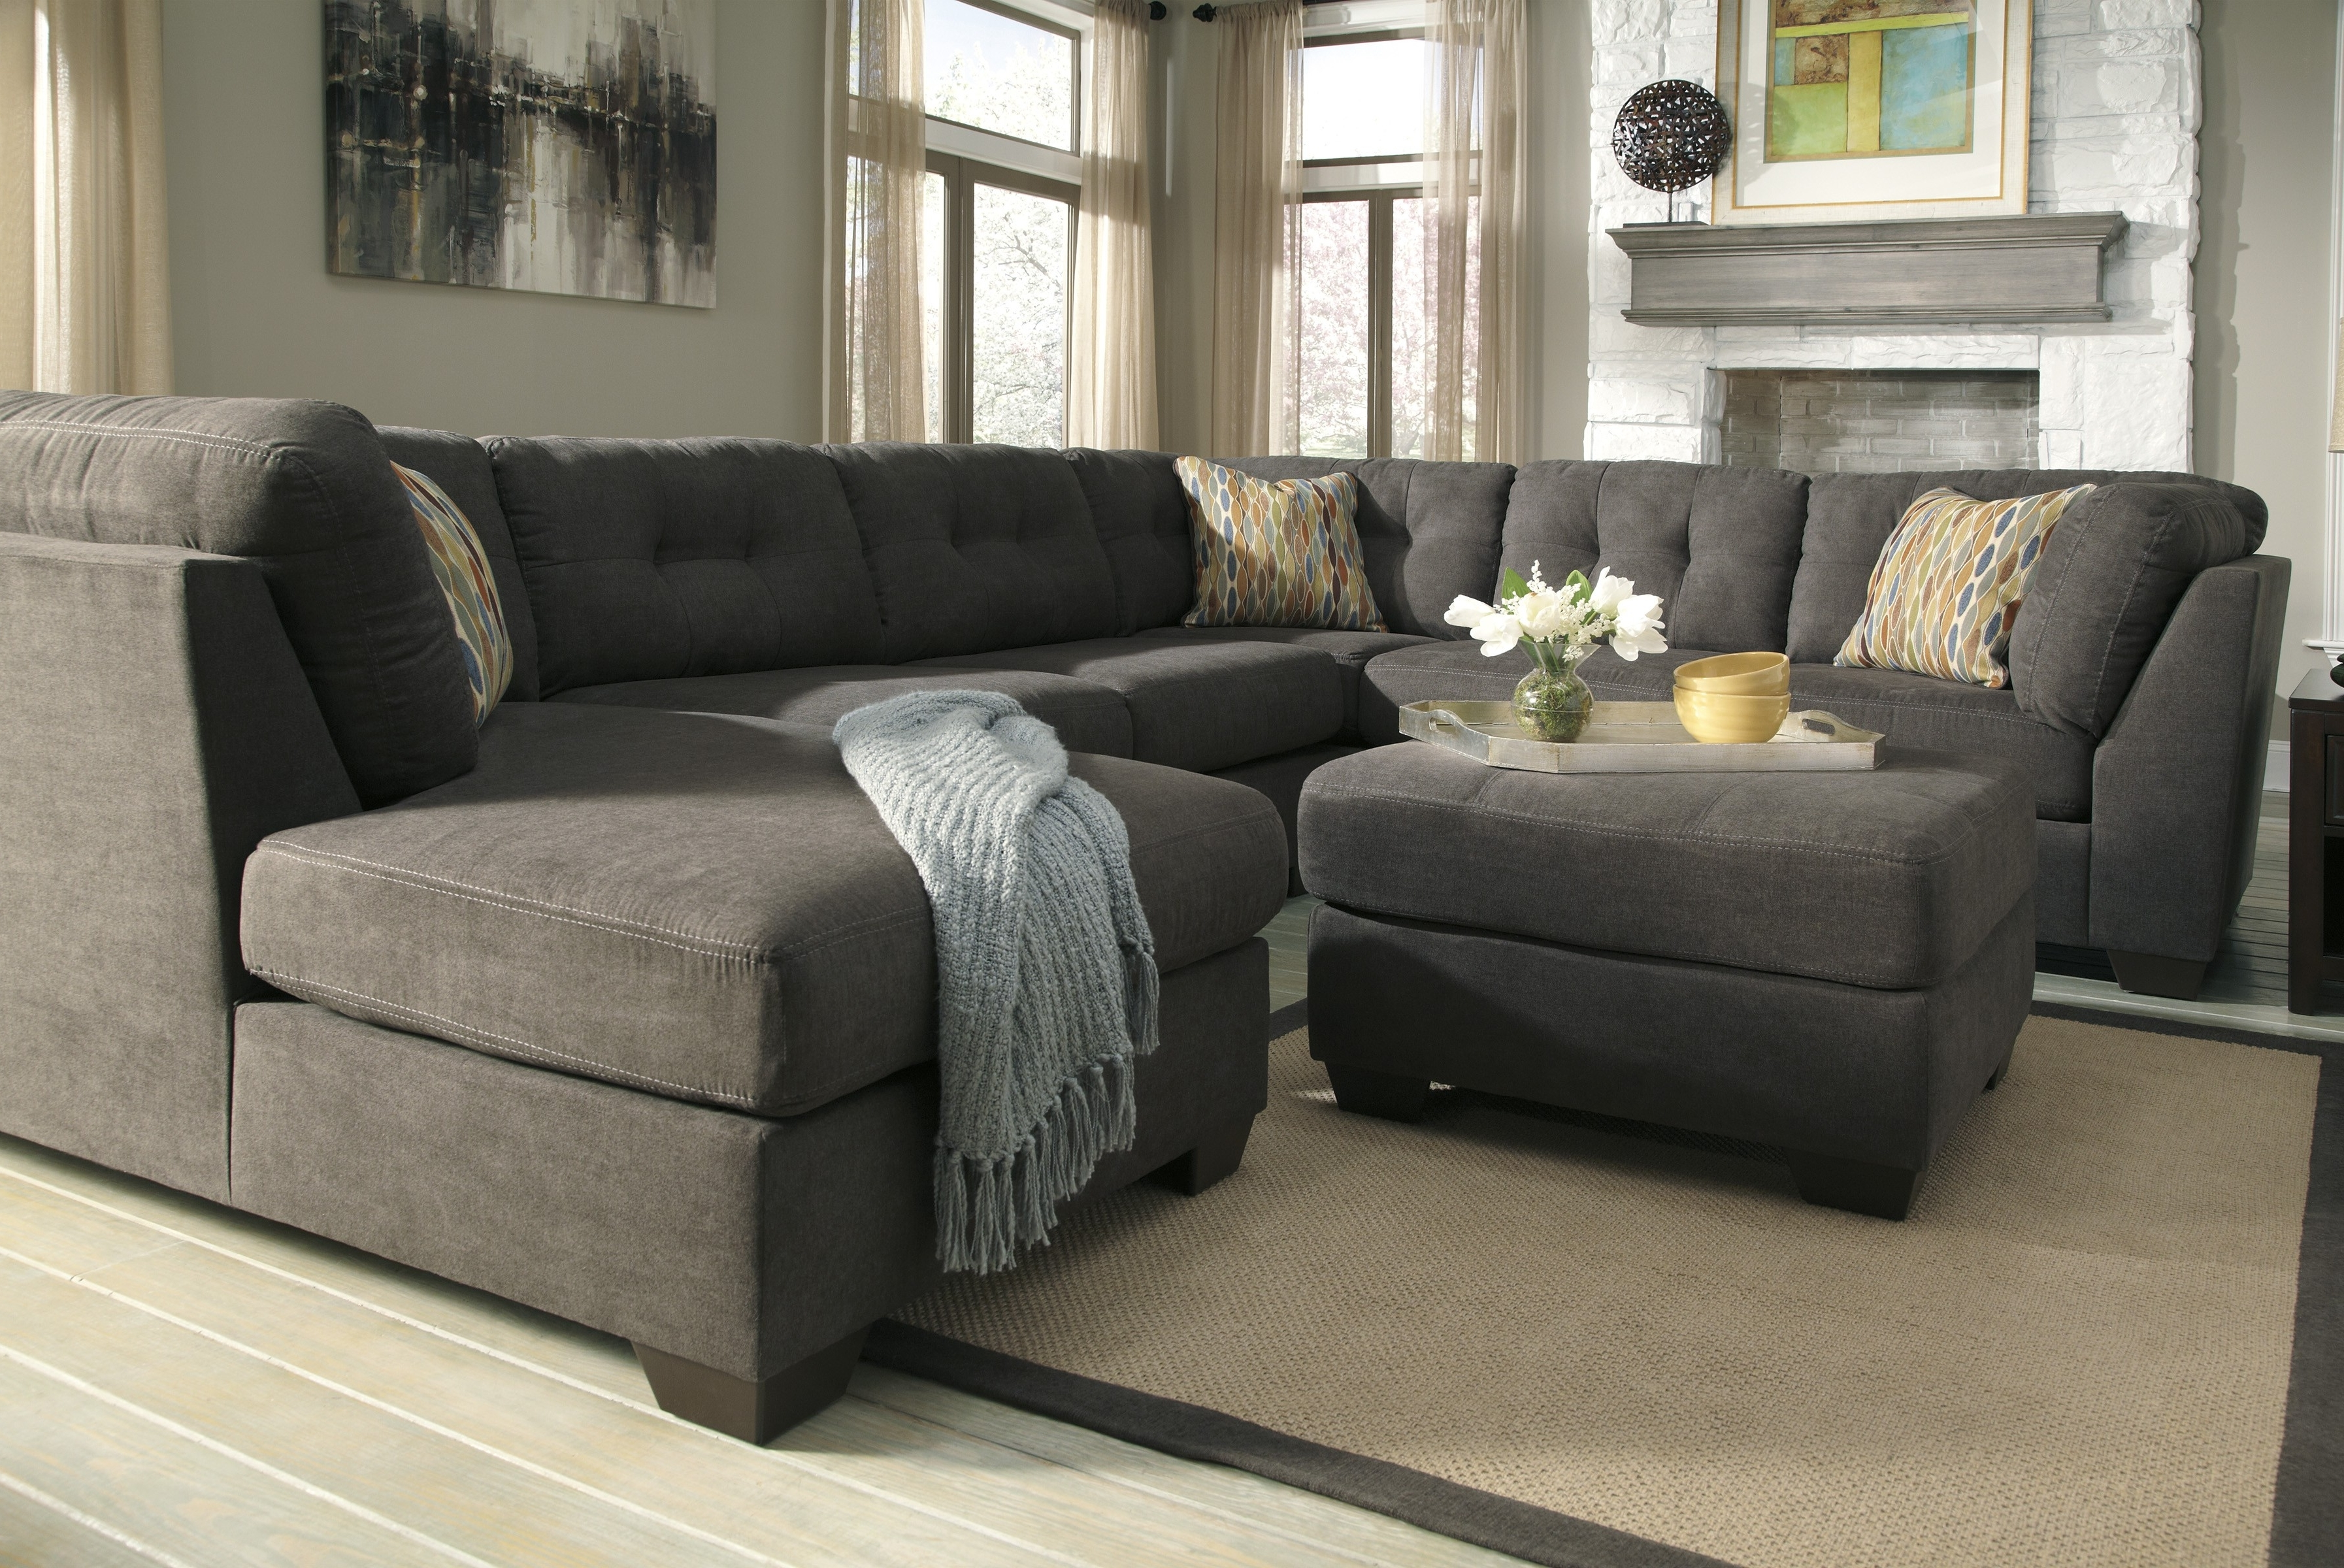 Famous 3 Piece Sectional Sleeper Sofas Regarding Costco Furniture Reviews Contemporary Sectional Sofas Grey Couch (View 9 of 20)